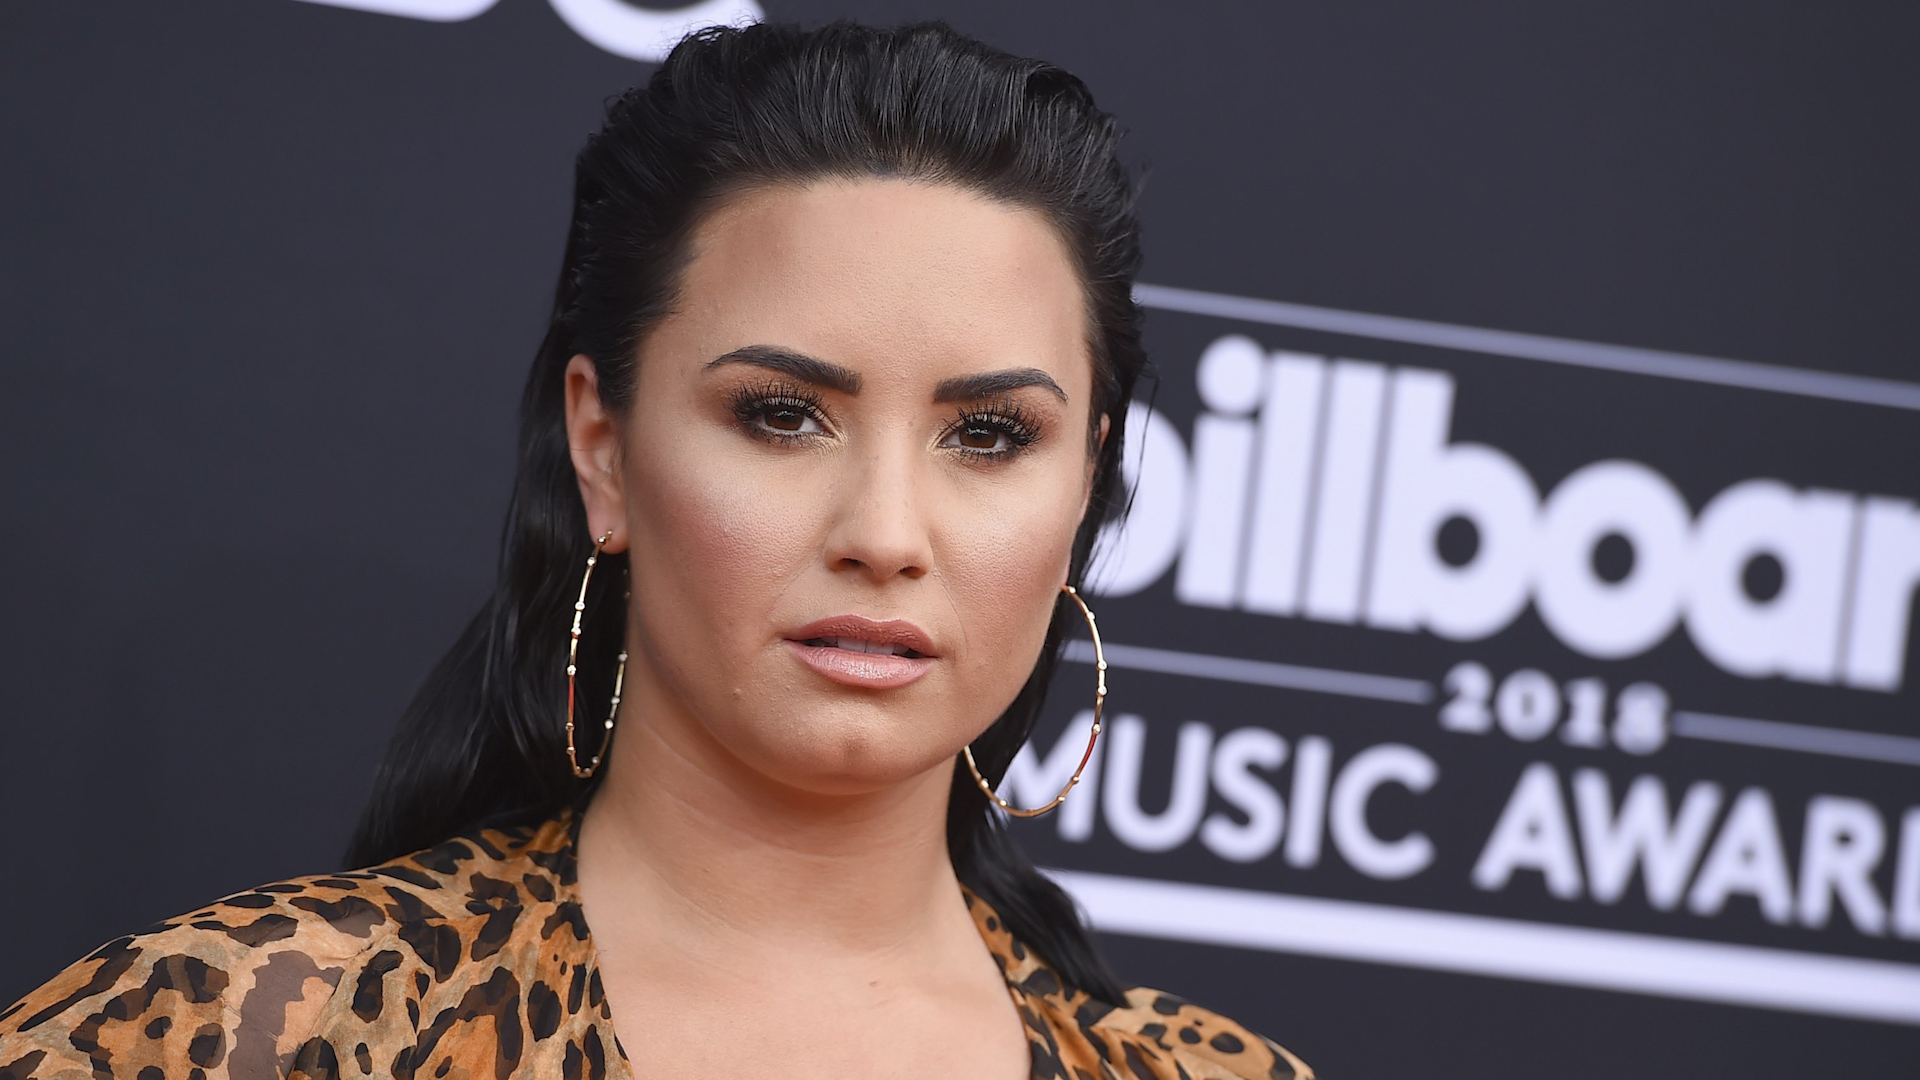 Joe Jonas sends his ex Demi Lovato some love after 'overdose'